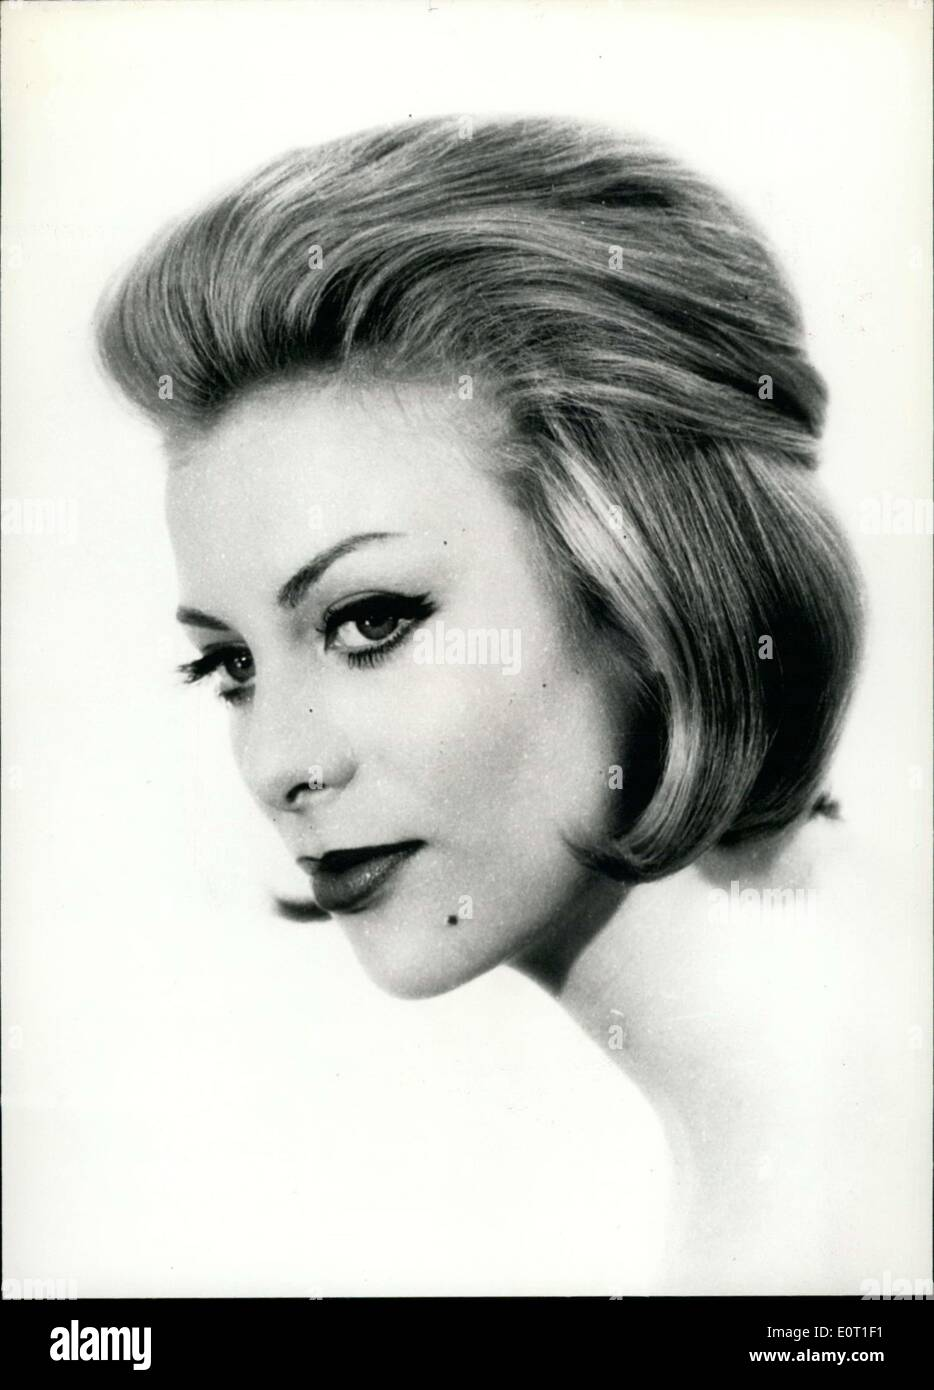 Hairstyle 1960 Stock Photos & Hairstyle 1960 Stock Images - Alamy